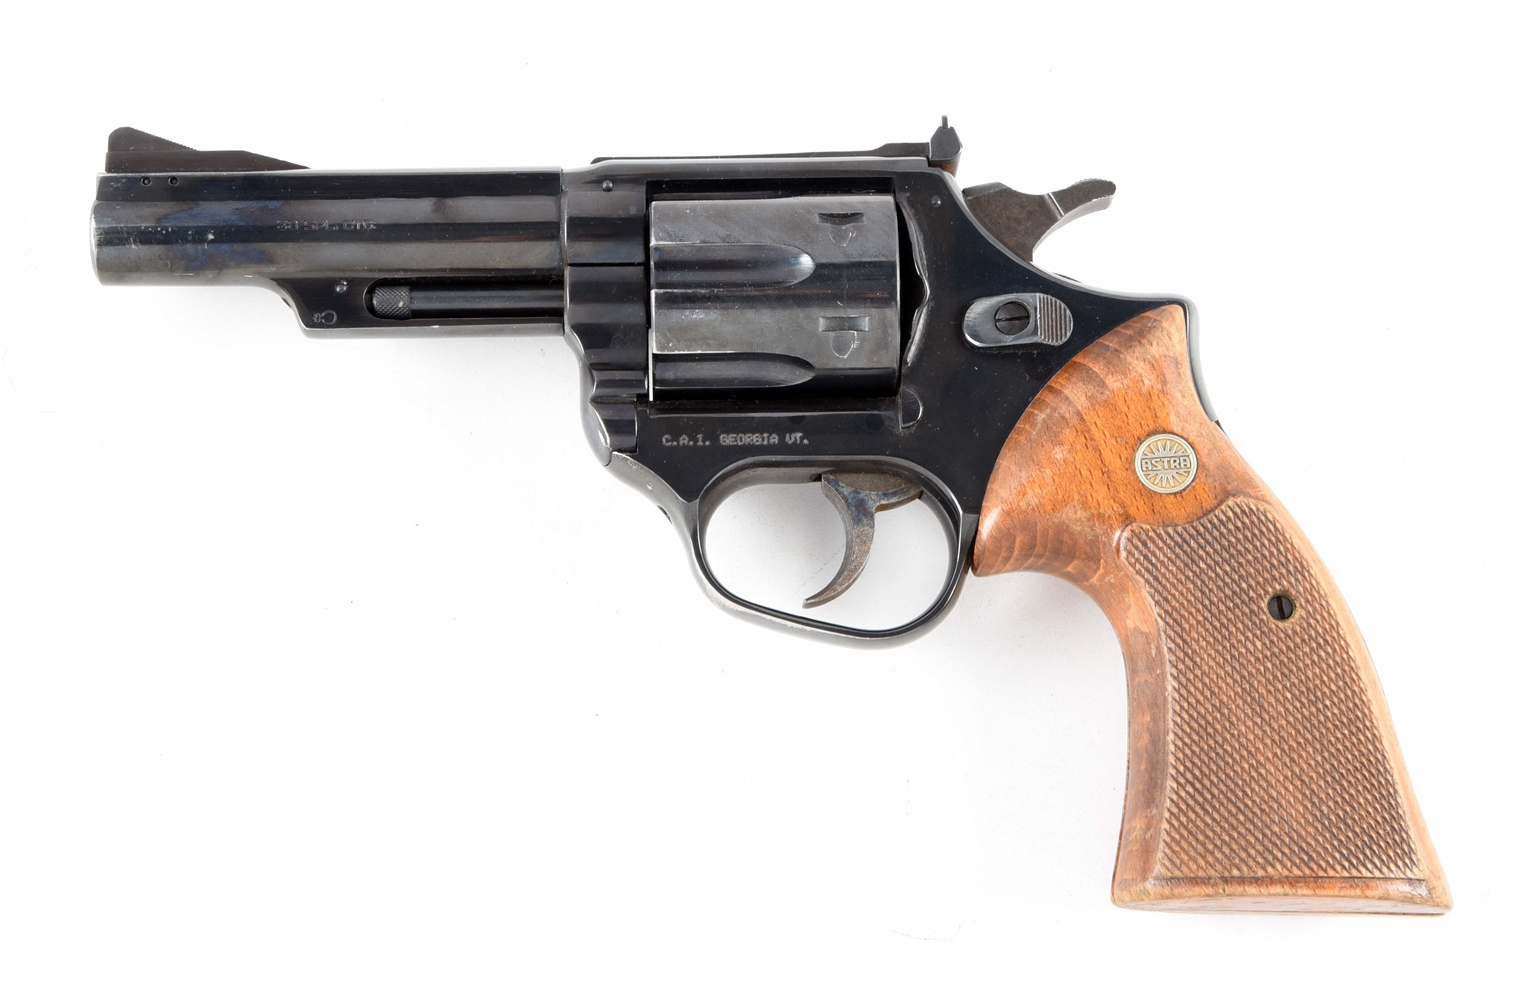 (M) ASTRA MODEL 960 DOUBLE ACTION .38 REVOLVER.